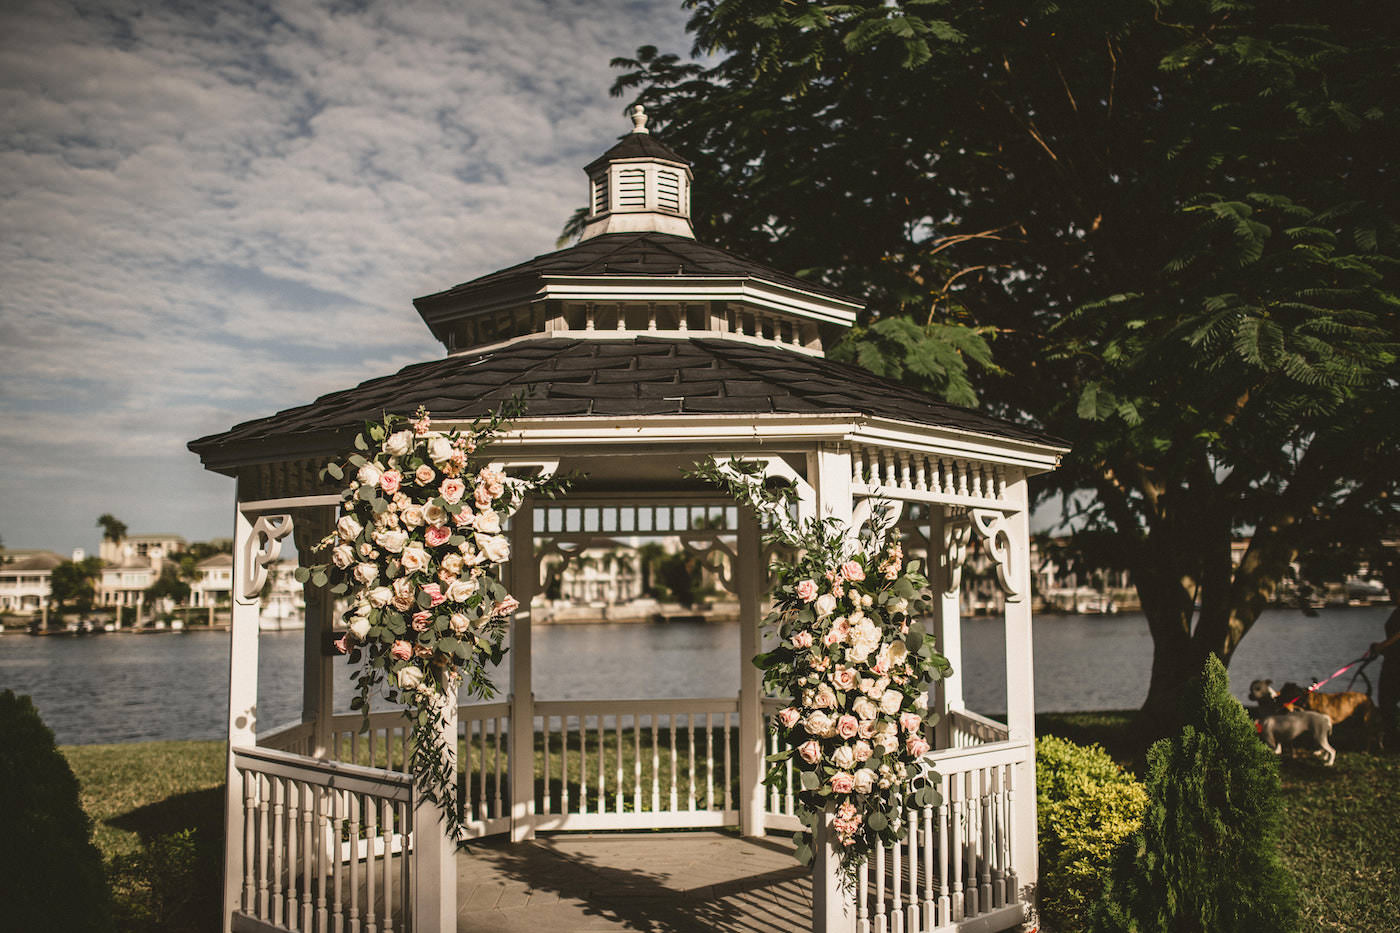 Tampa Wedding Waterfront Garden Ceremony Venue with White and Blush Pink Gazebo Floral Arrangements featuring Roses and Greenery